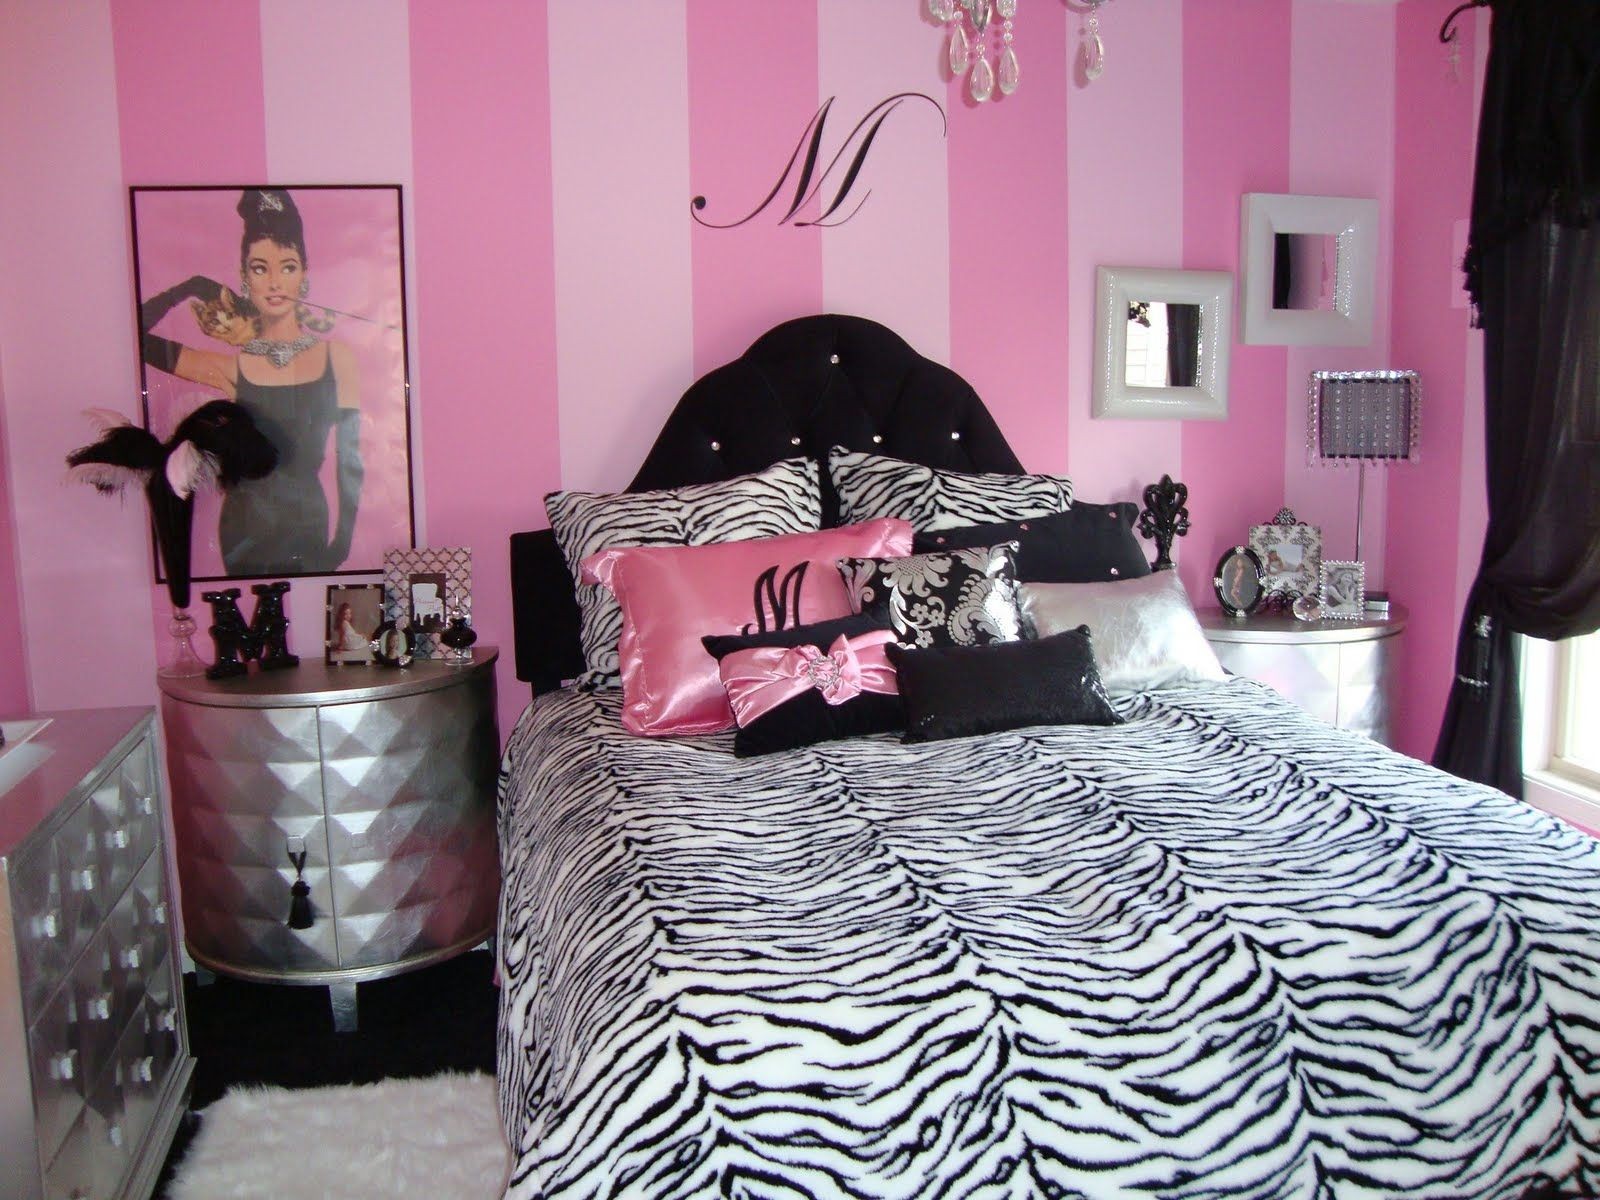 Enchanting Pink Bedroom Wall Art for Girl Room with Fancy Bed and